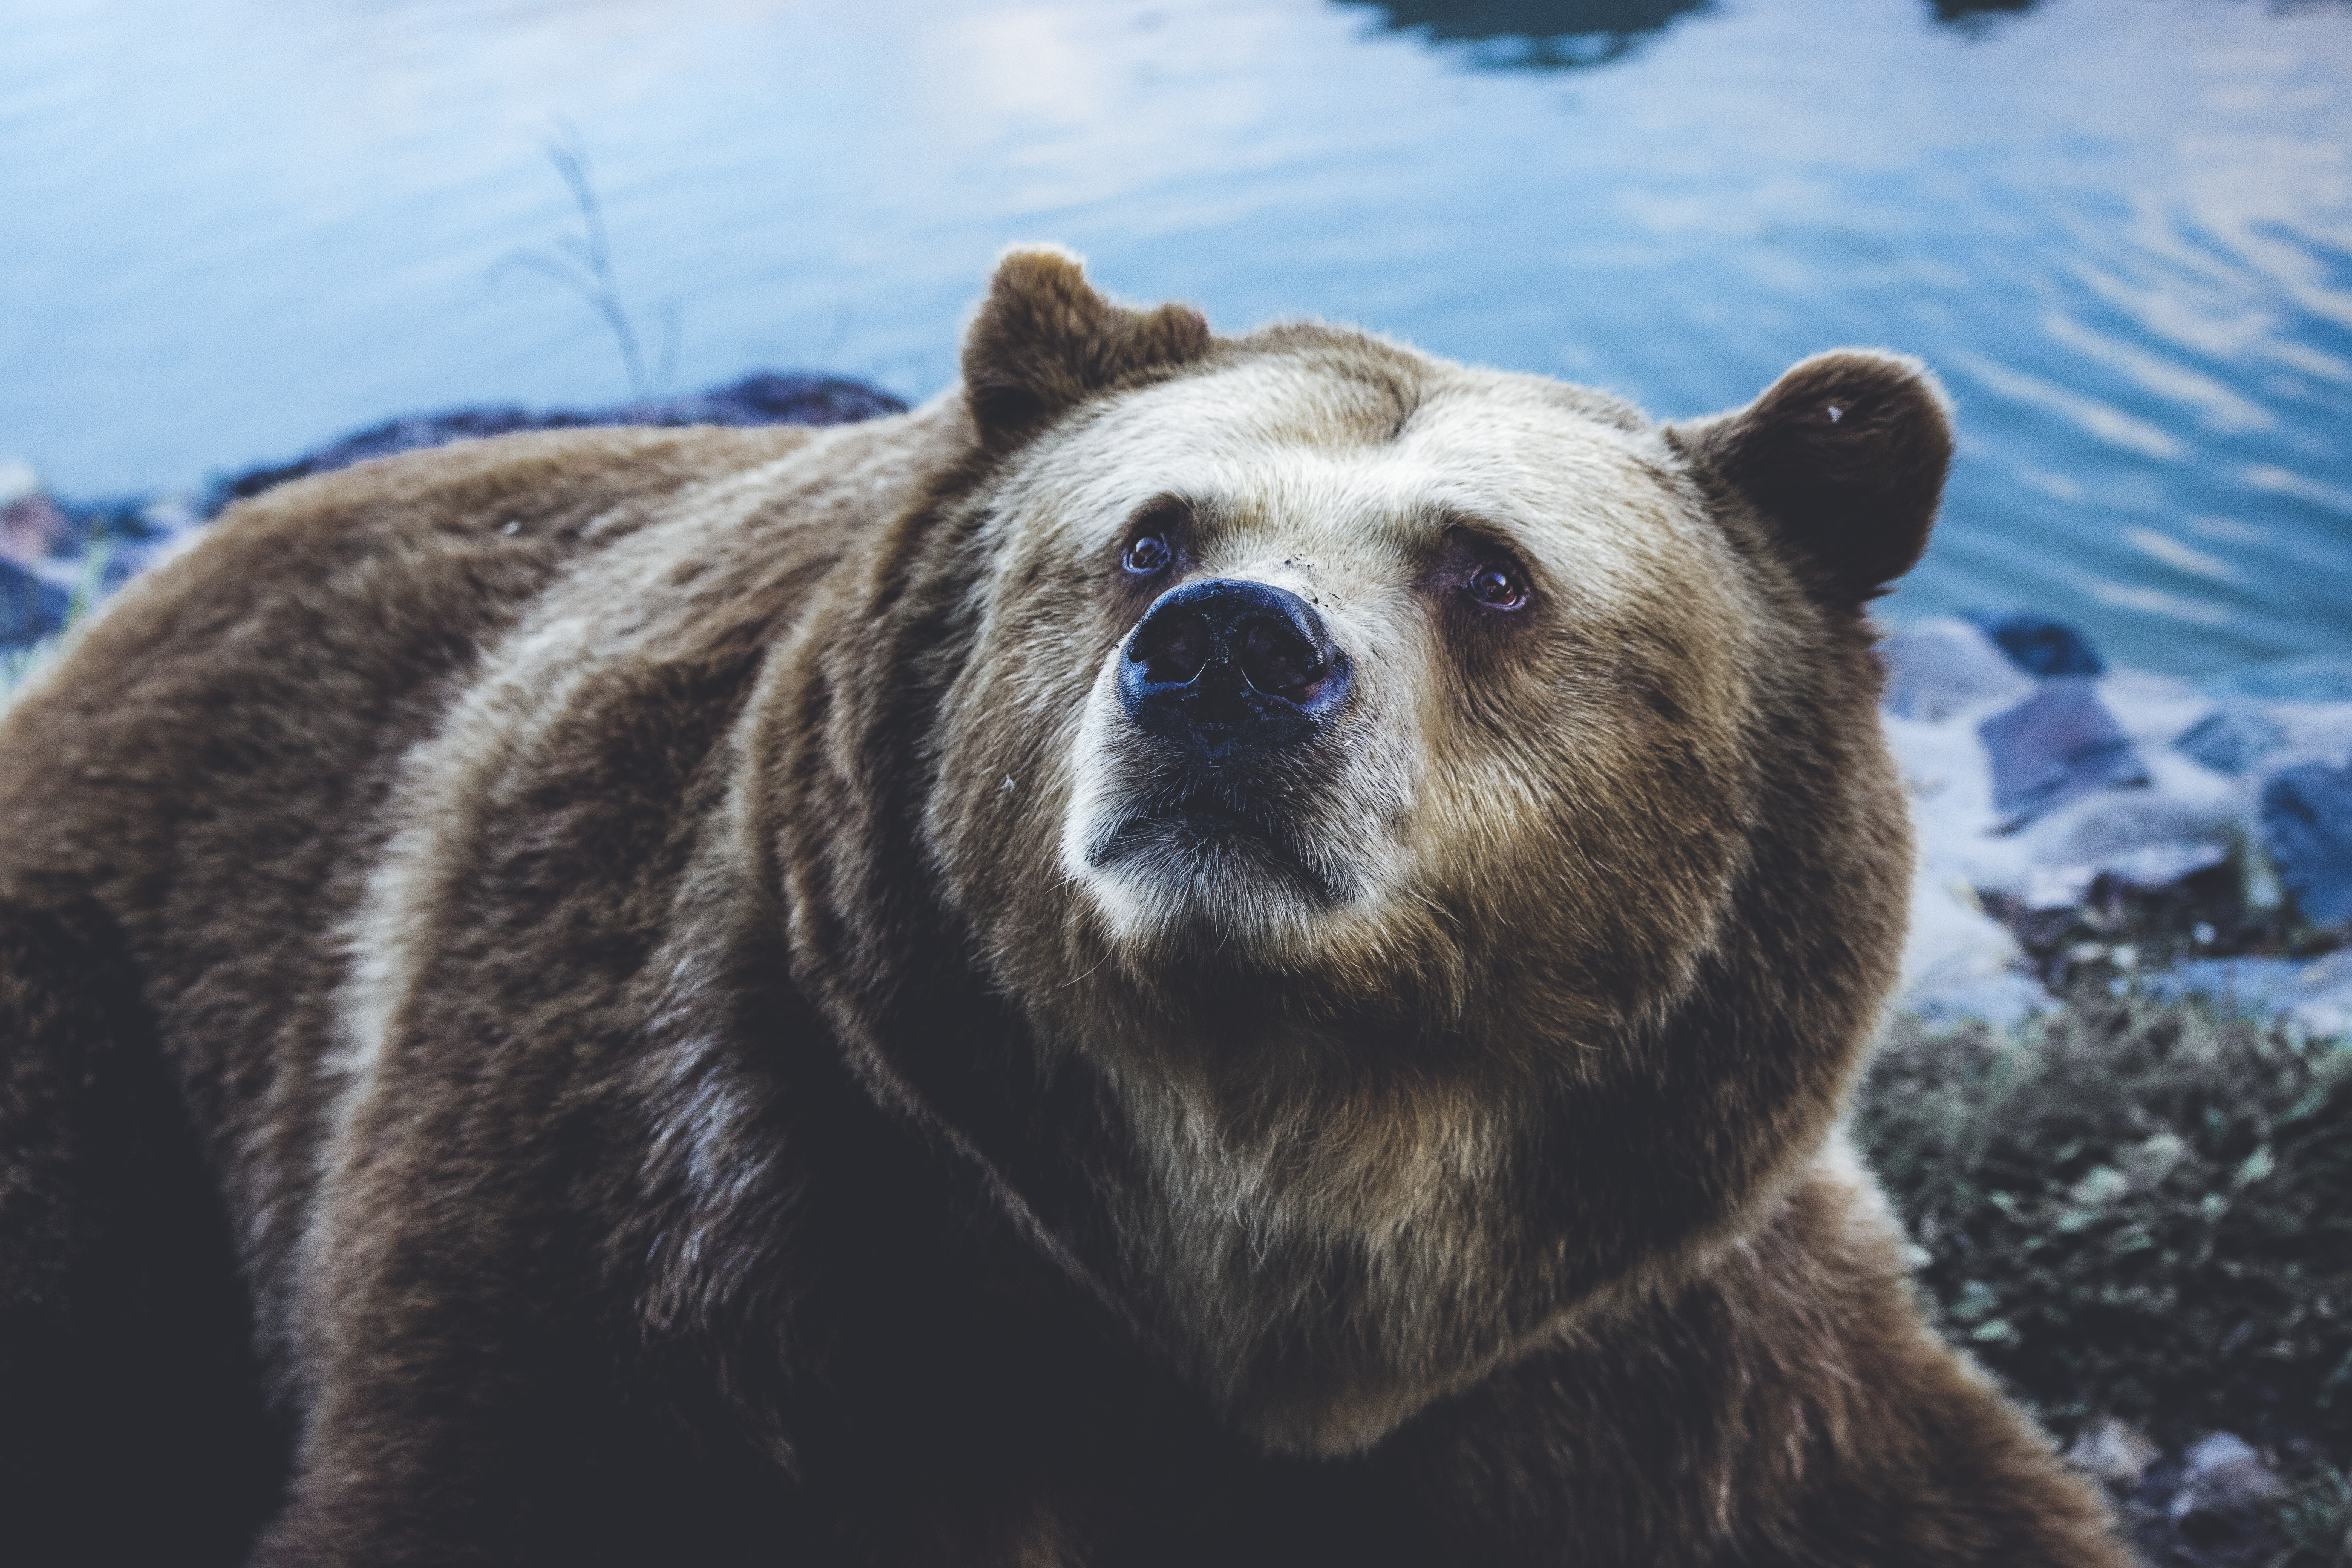 grizzly bear near body of water